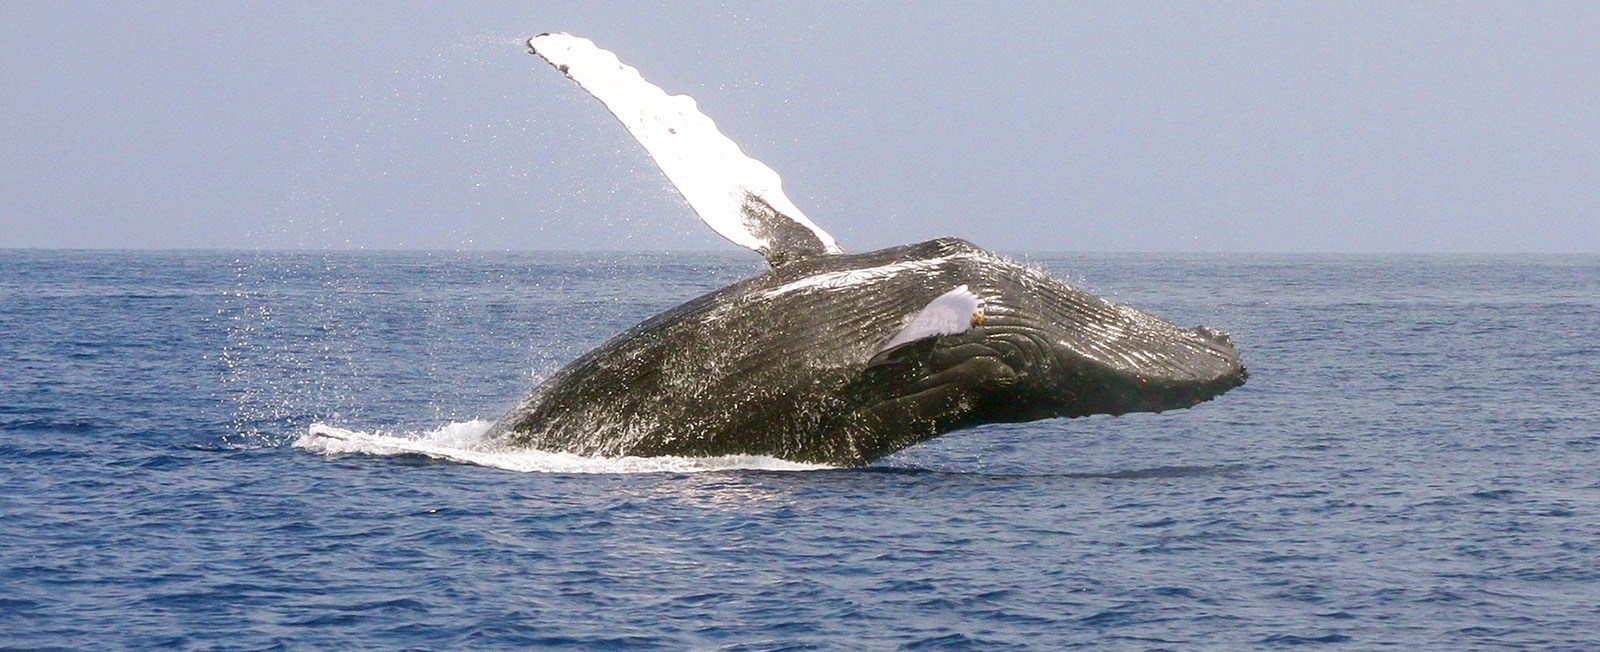 Whale watching season is from April though October. There are several types of whales that you might see!